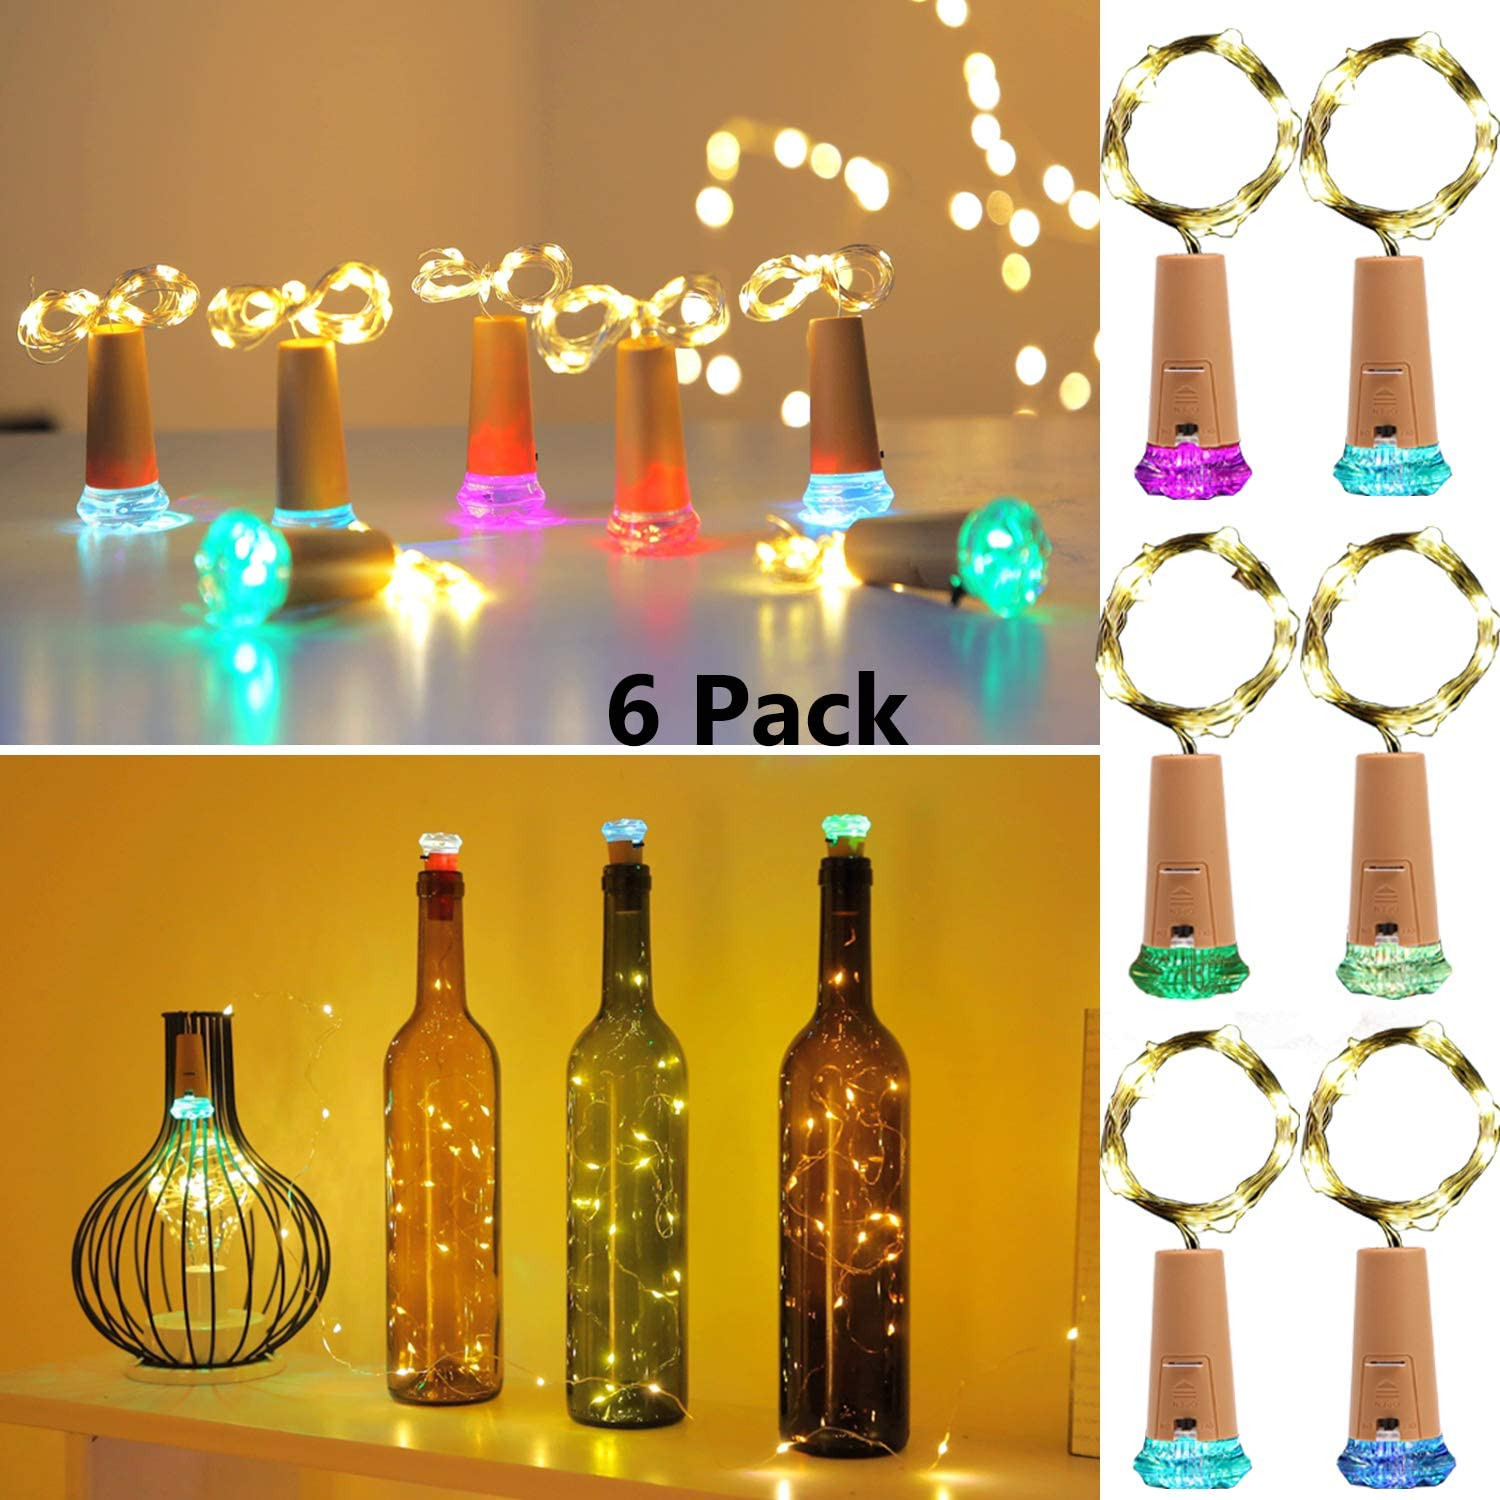 KZOBYD Wine Bottle Lights with Cork 6 Pack Fairy Battery Operated Mini Lights Diamond Shaped LED Cork Lights for Wine Bottles DIY Party Decor Christmas Halloween Wedding Festival (Warm White)